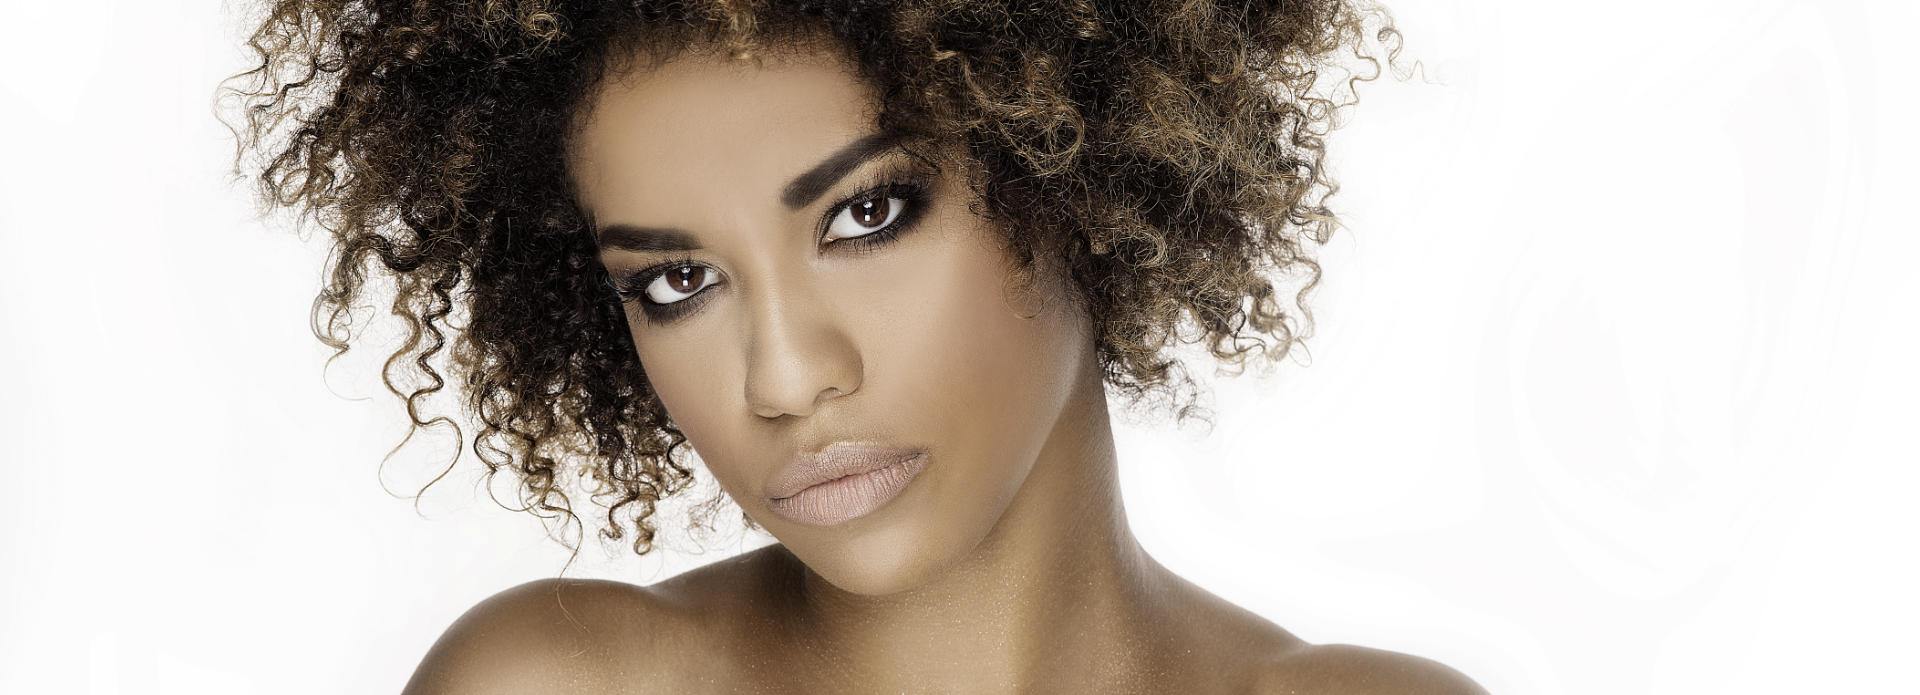 Face of an Afro-American woman with flowless radiant skin after light therapy.